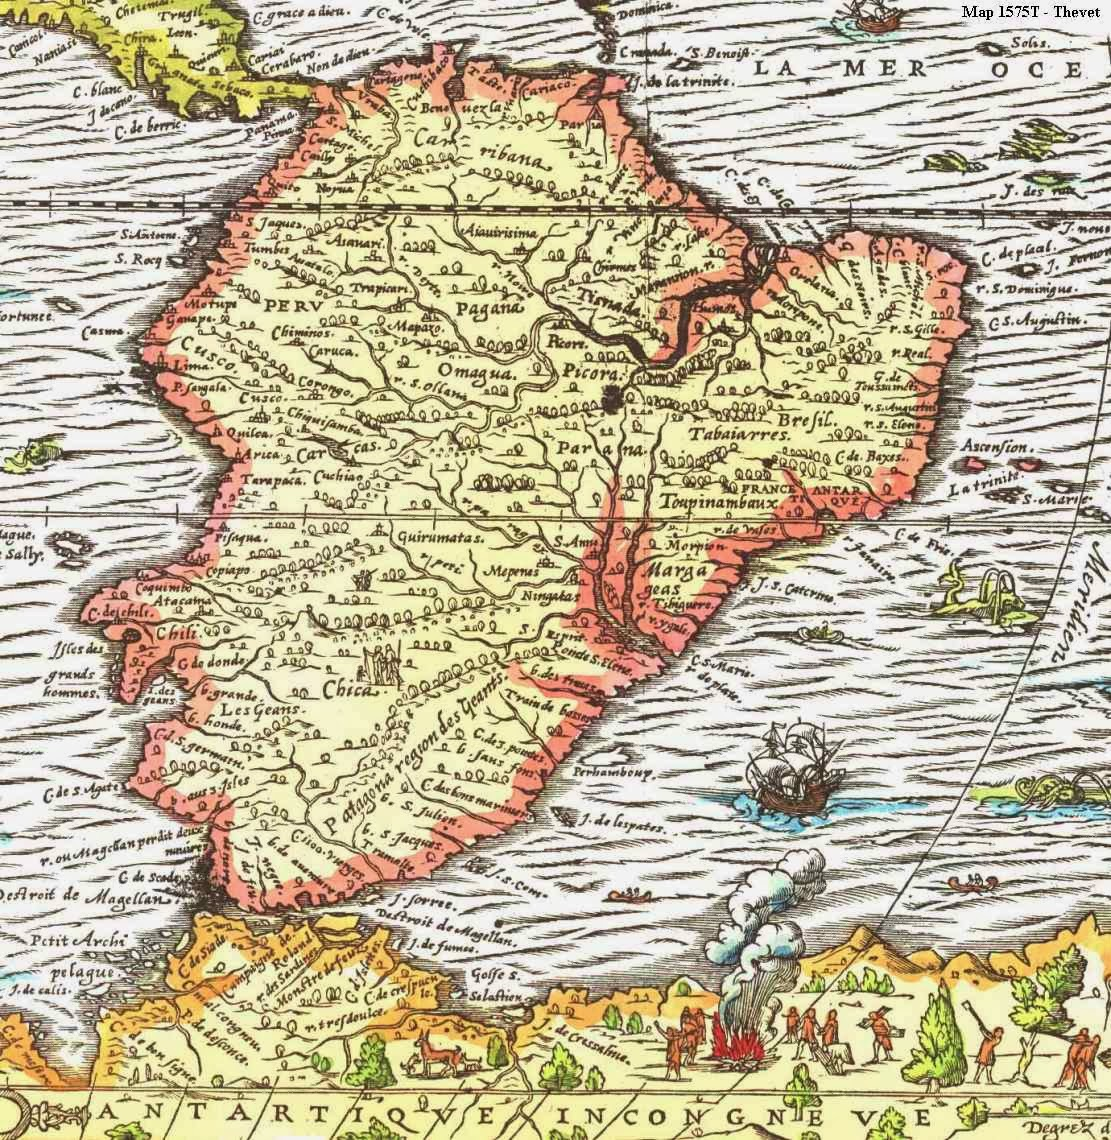 Online Maps South America Early Maps - Early maps of america